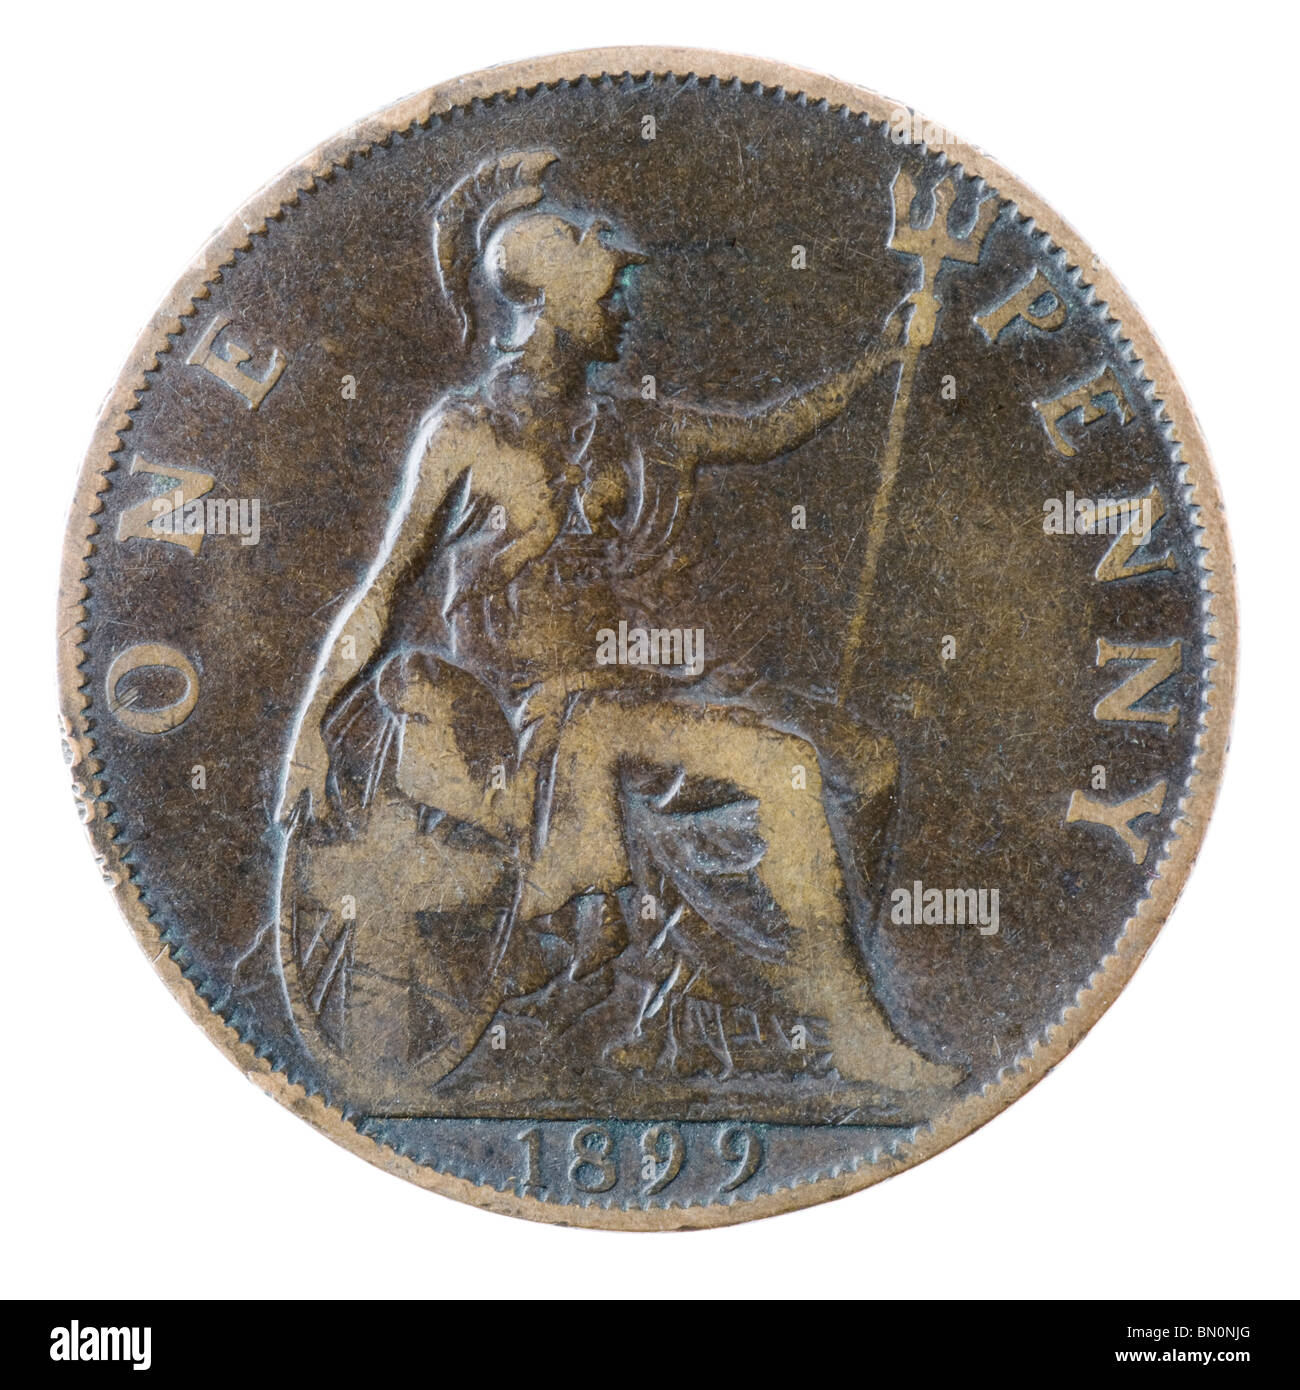 1899 British Victorian Penny coin - Stock Image